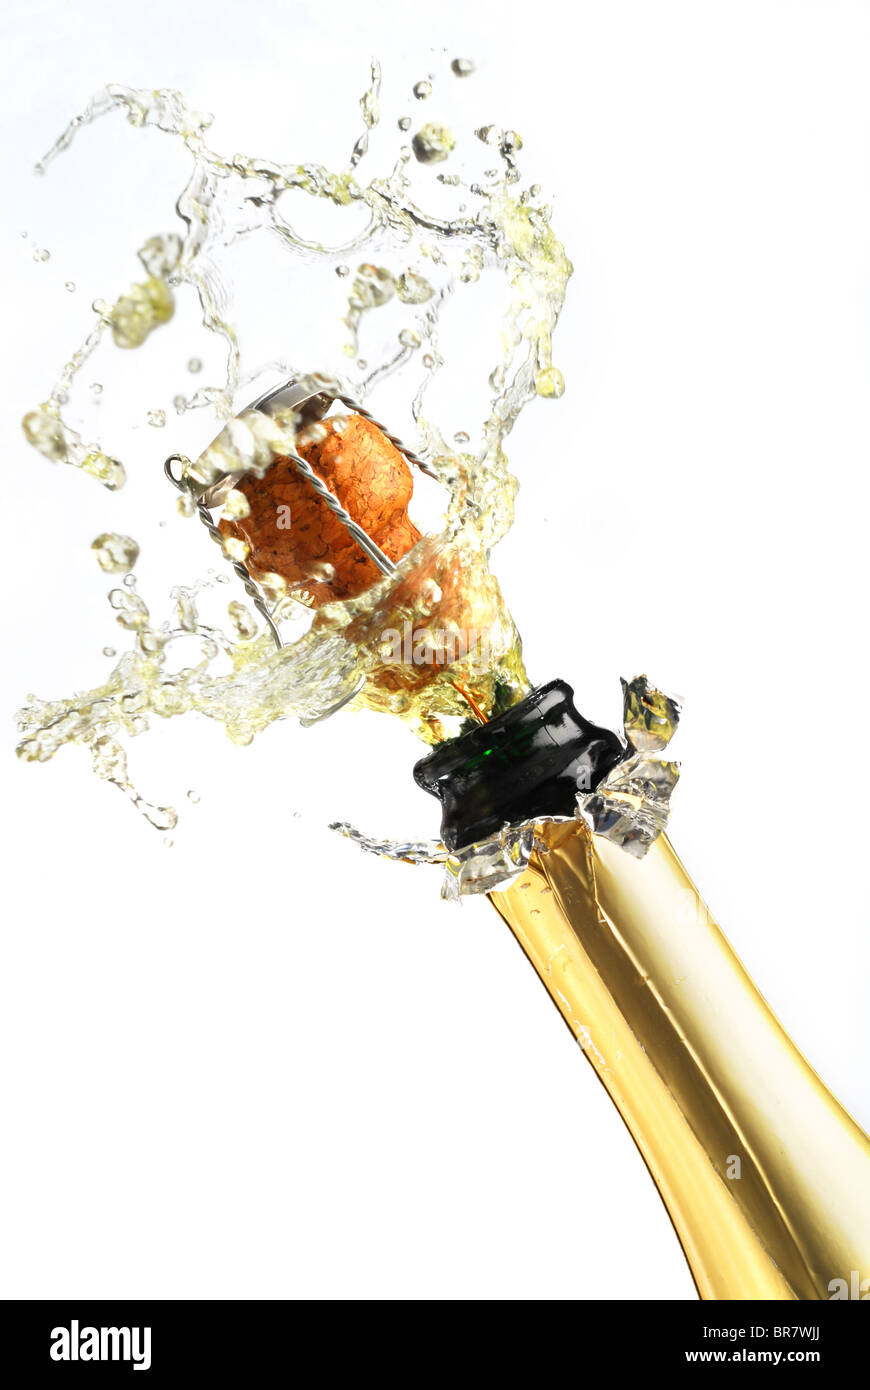 Extreme close-up image of explosion of champagne bottle cork - Stock Image